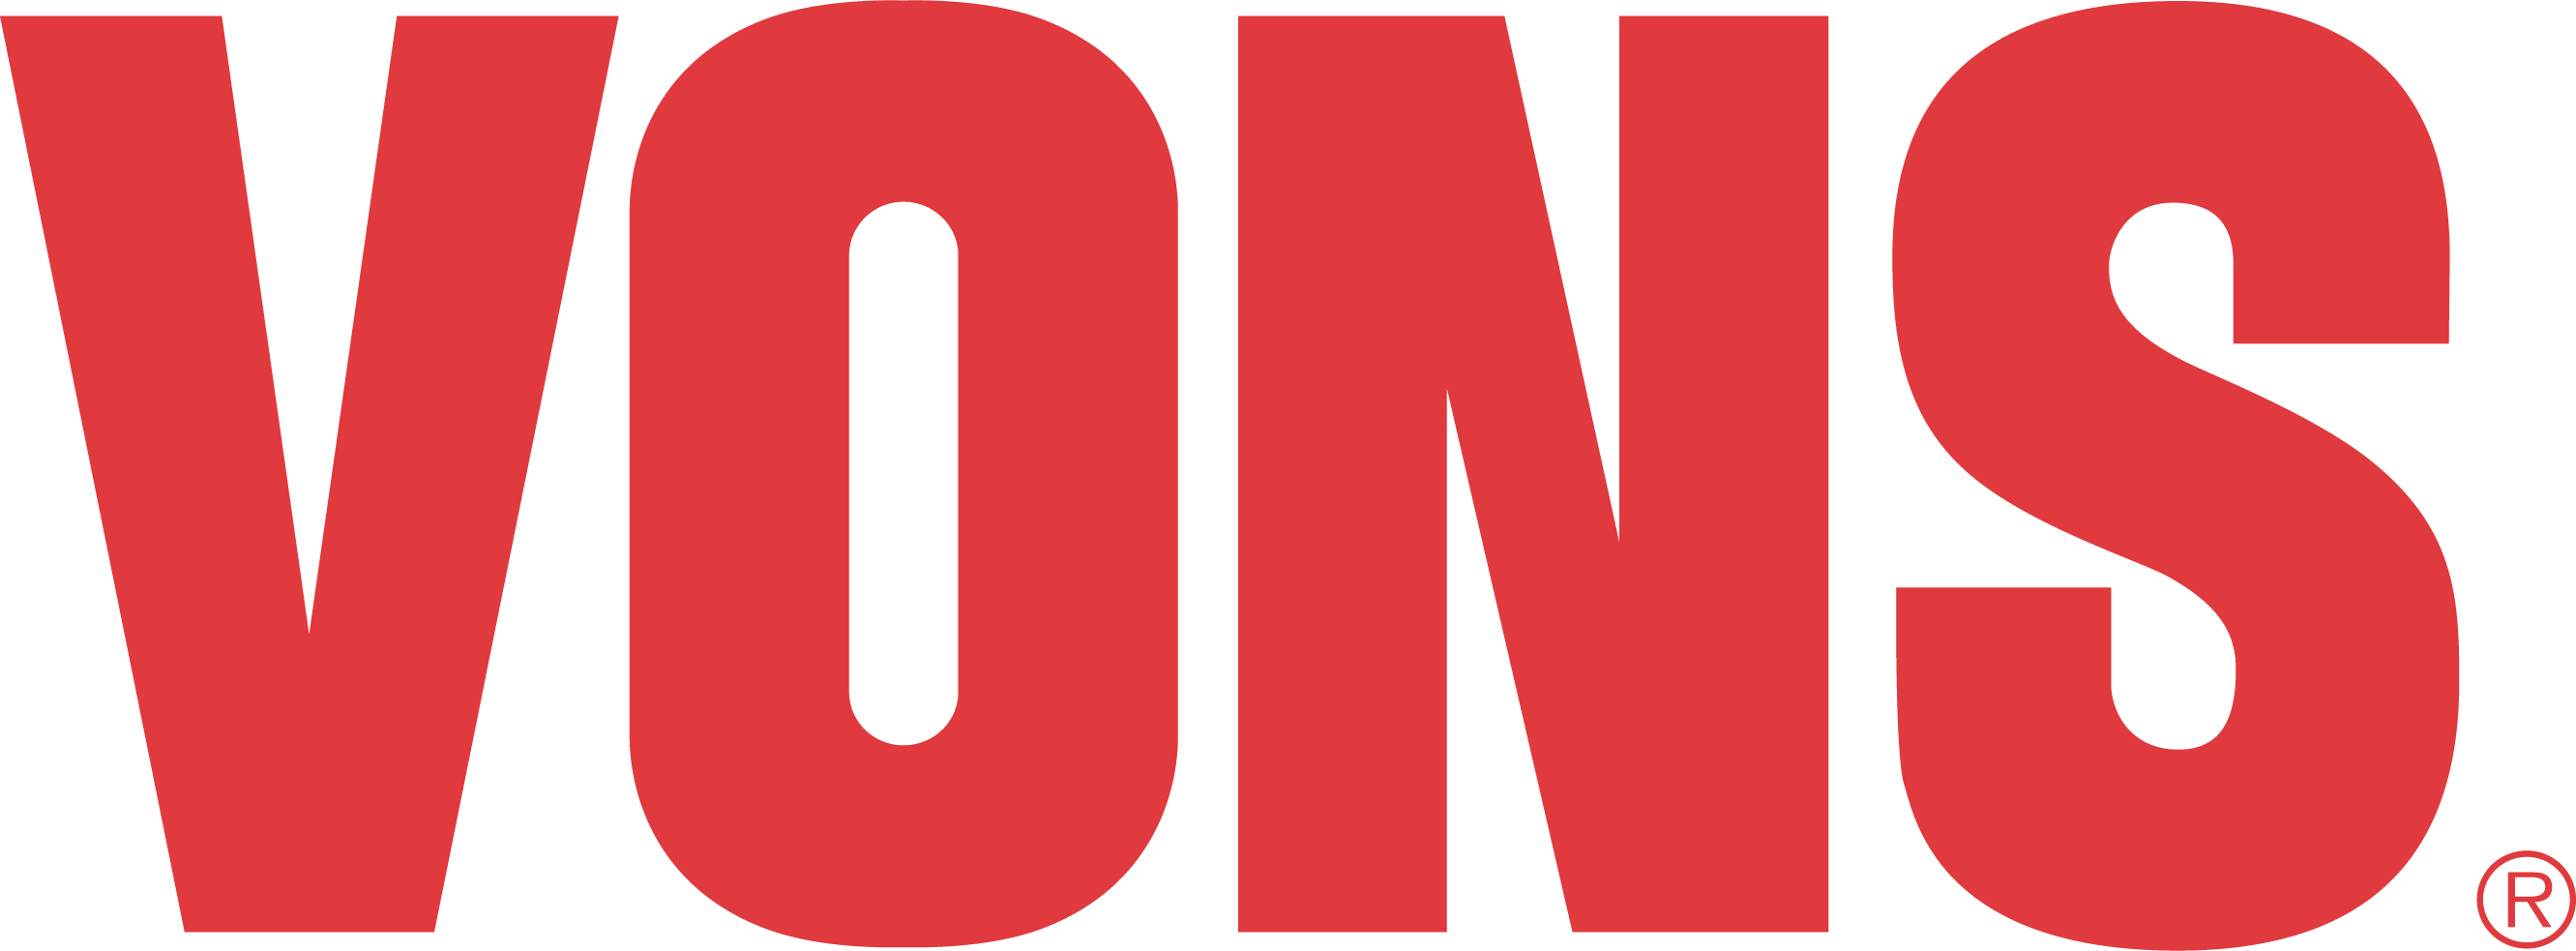 Vons Logo png